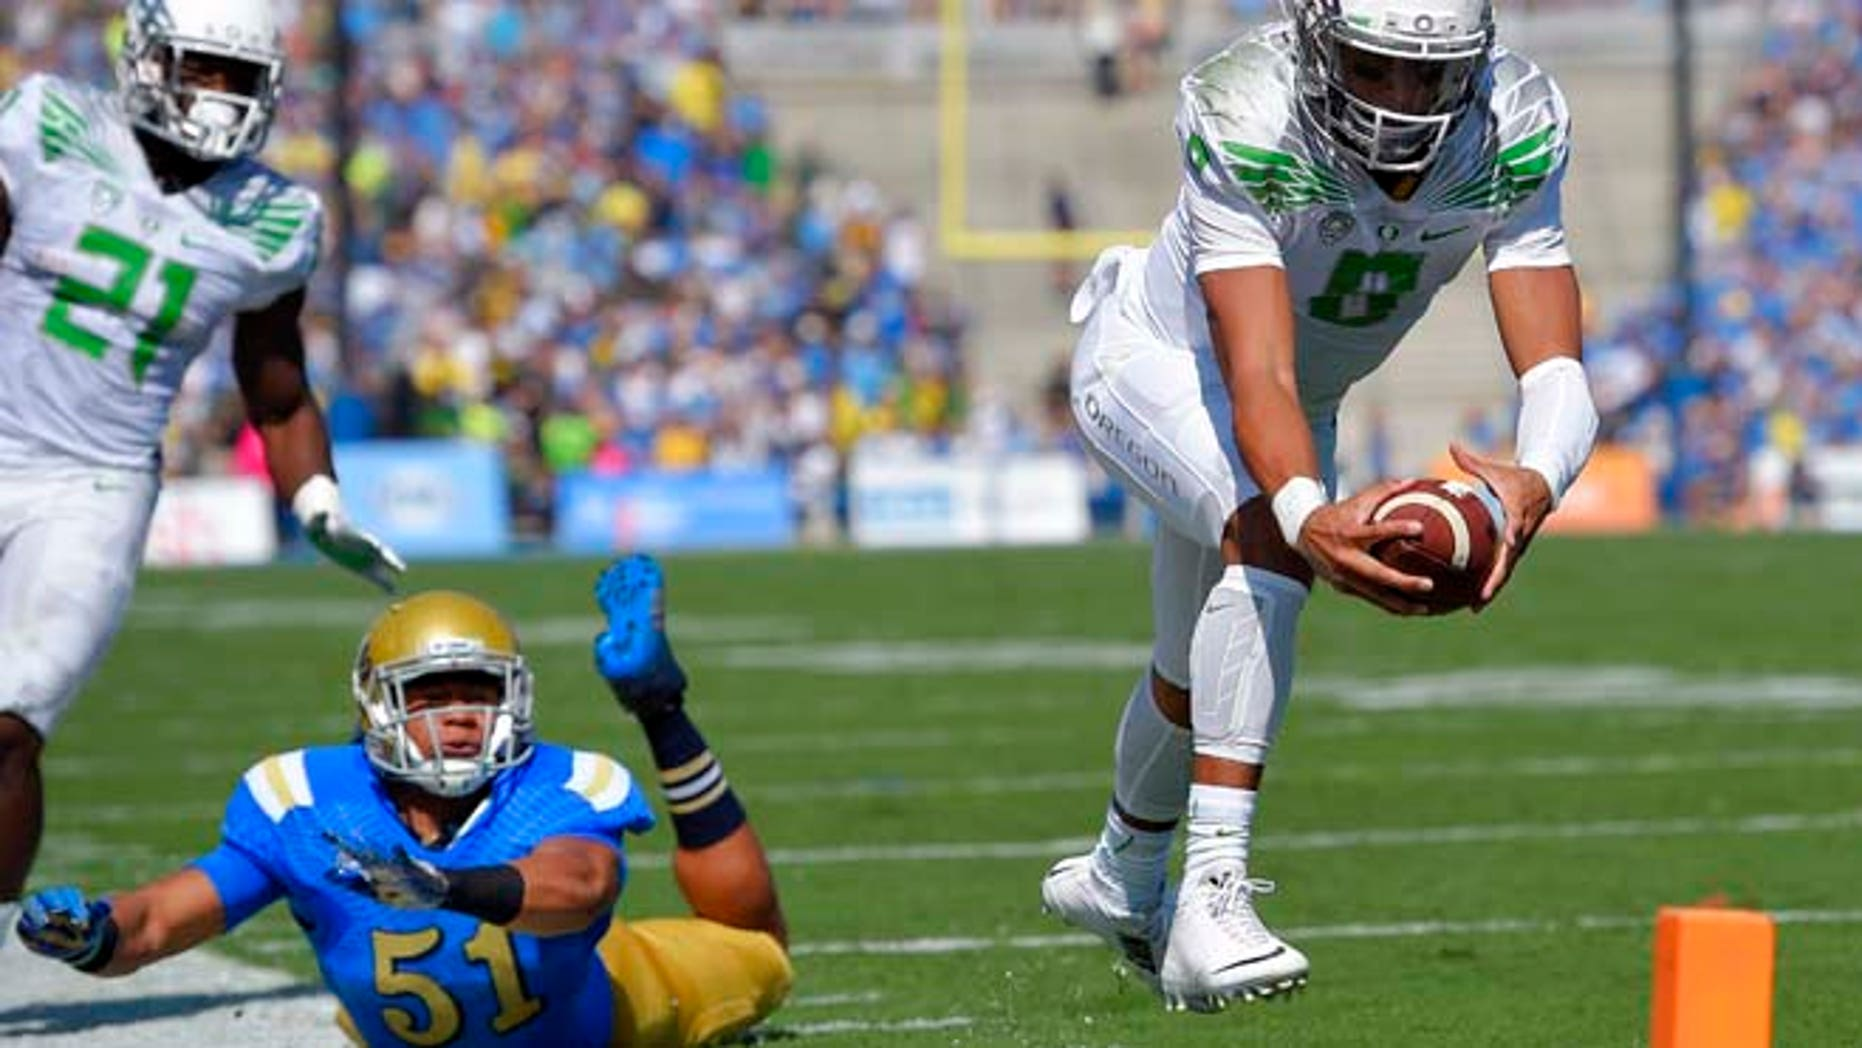 In this Oct. 11, 2014, file photo, Oregon quarterback Marcus Mariota, right, dives in for a touchdown as UCLA linebacker Aaron Wallace, center, misses the tackle and running back Royce Freeman looks on during the first half of an NCAA college football game in Pasadena, Calif.